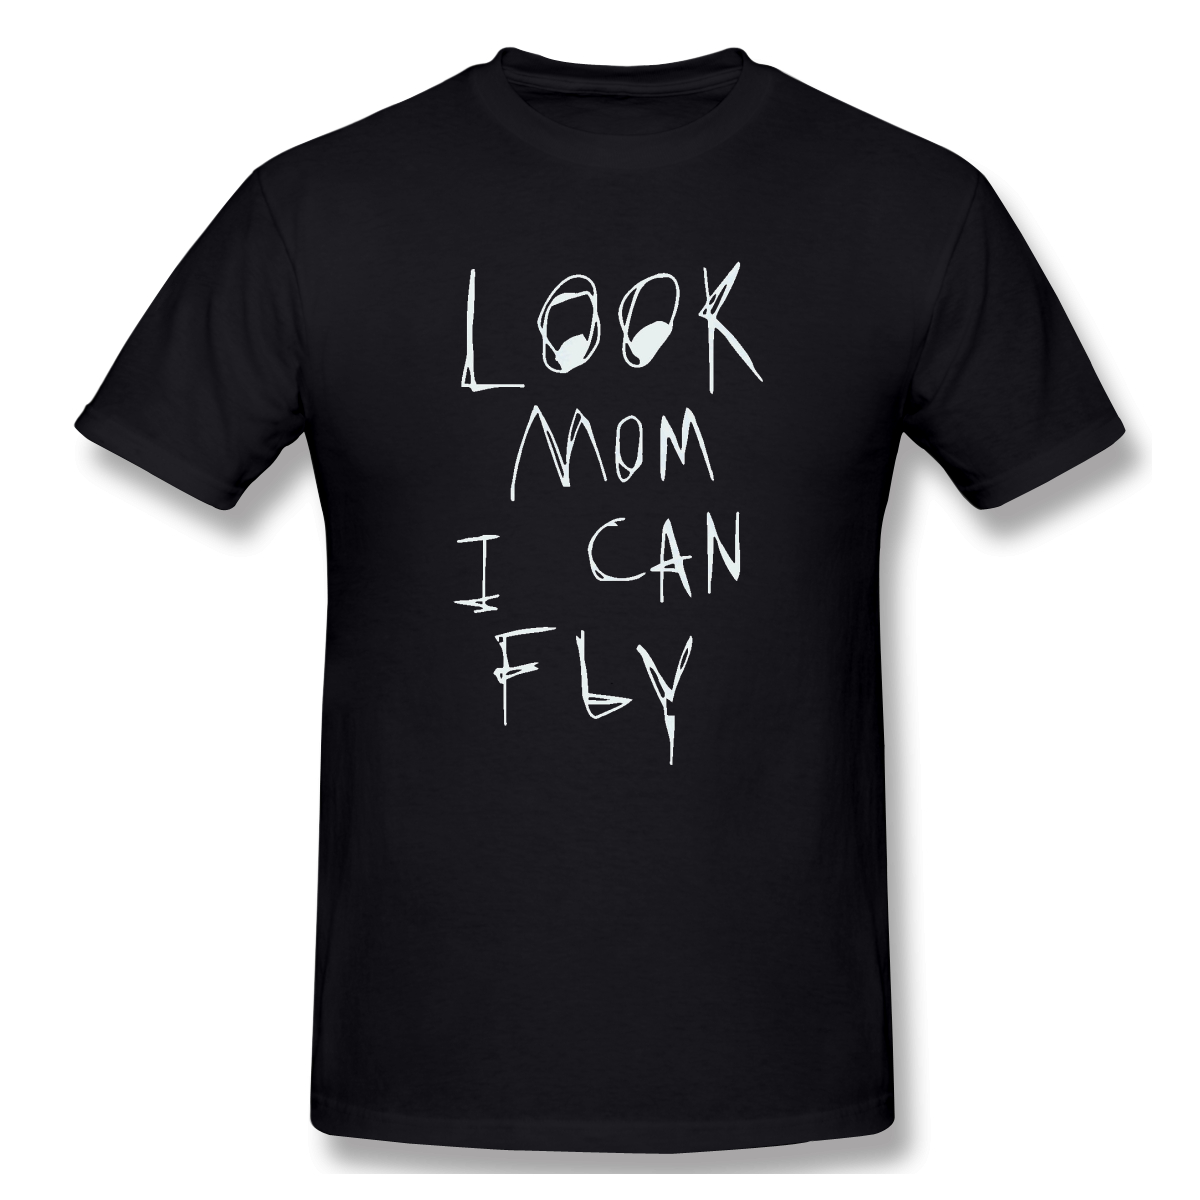 T-Shirt for Men Look Mom I Can Fly 100% Cotton Tees Crewneck travis scott Short Sleeve T Shirt 6XL Funny Plus Size Clothes(China)